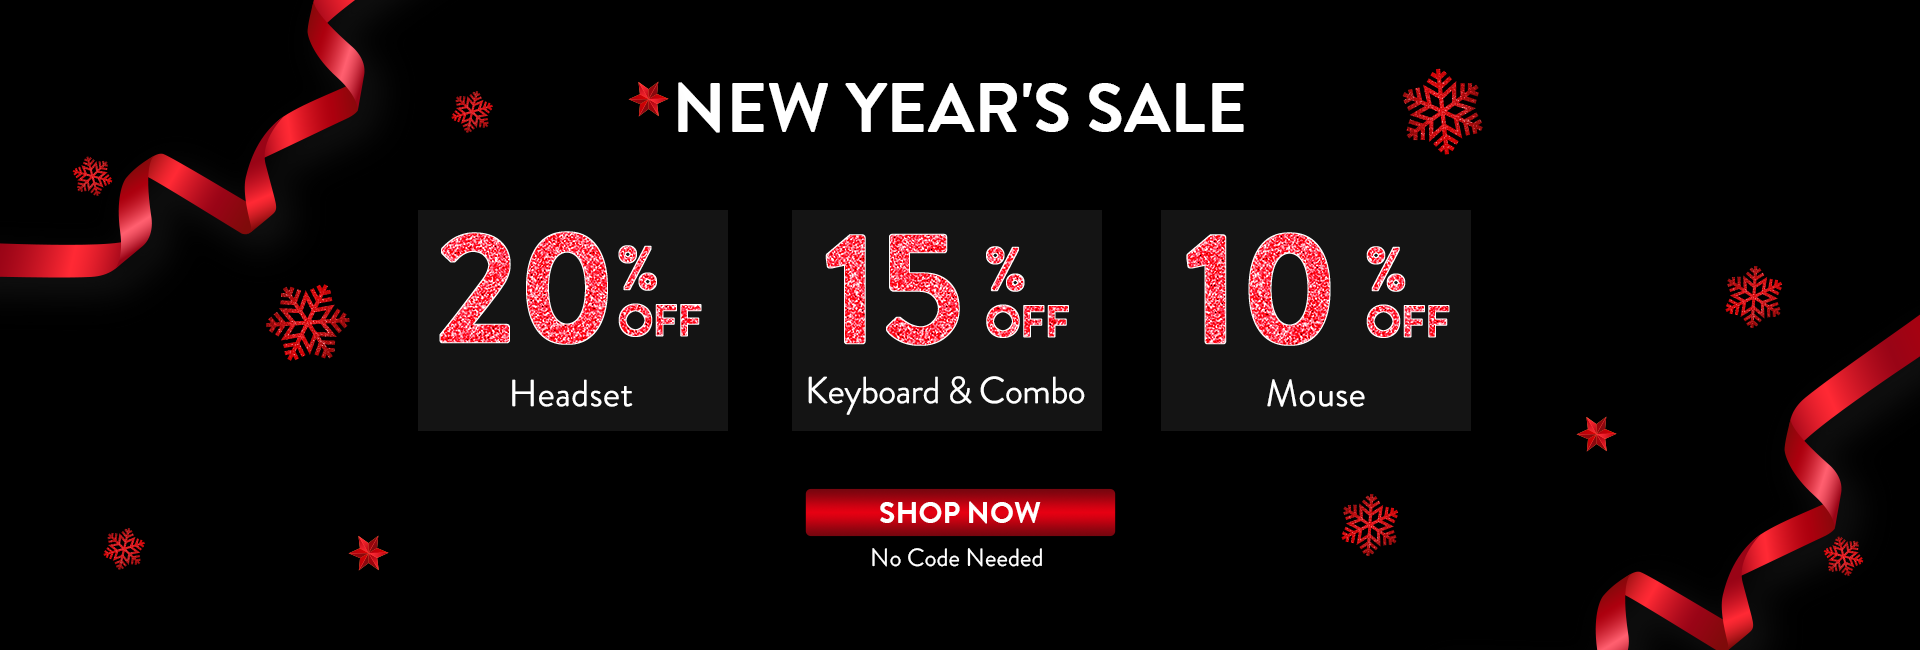 Redragon New Year's sale